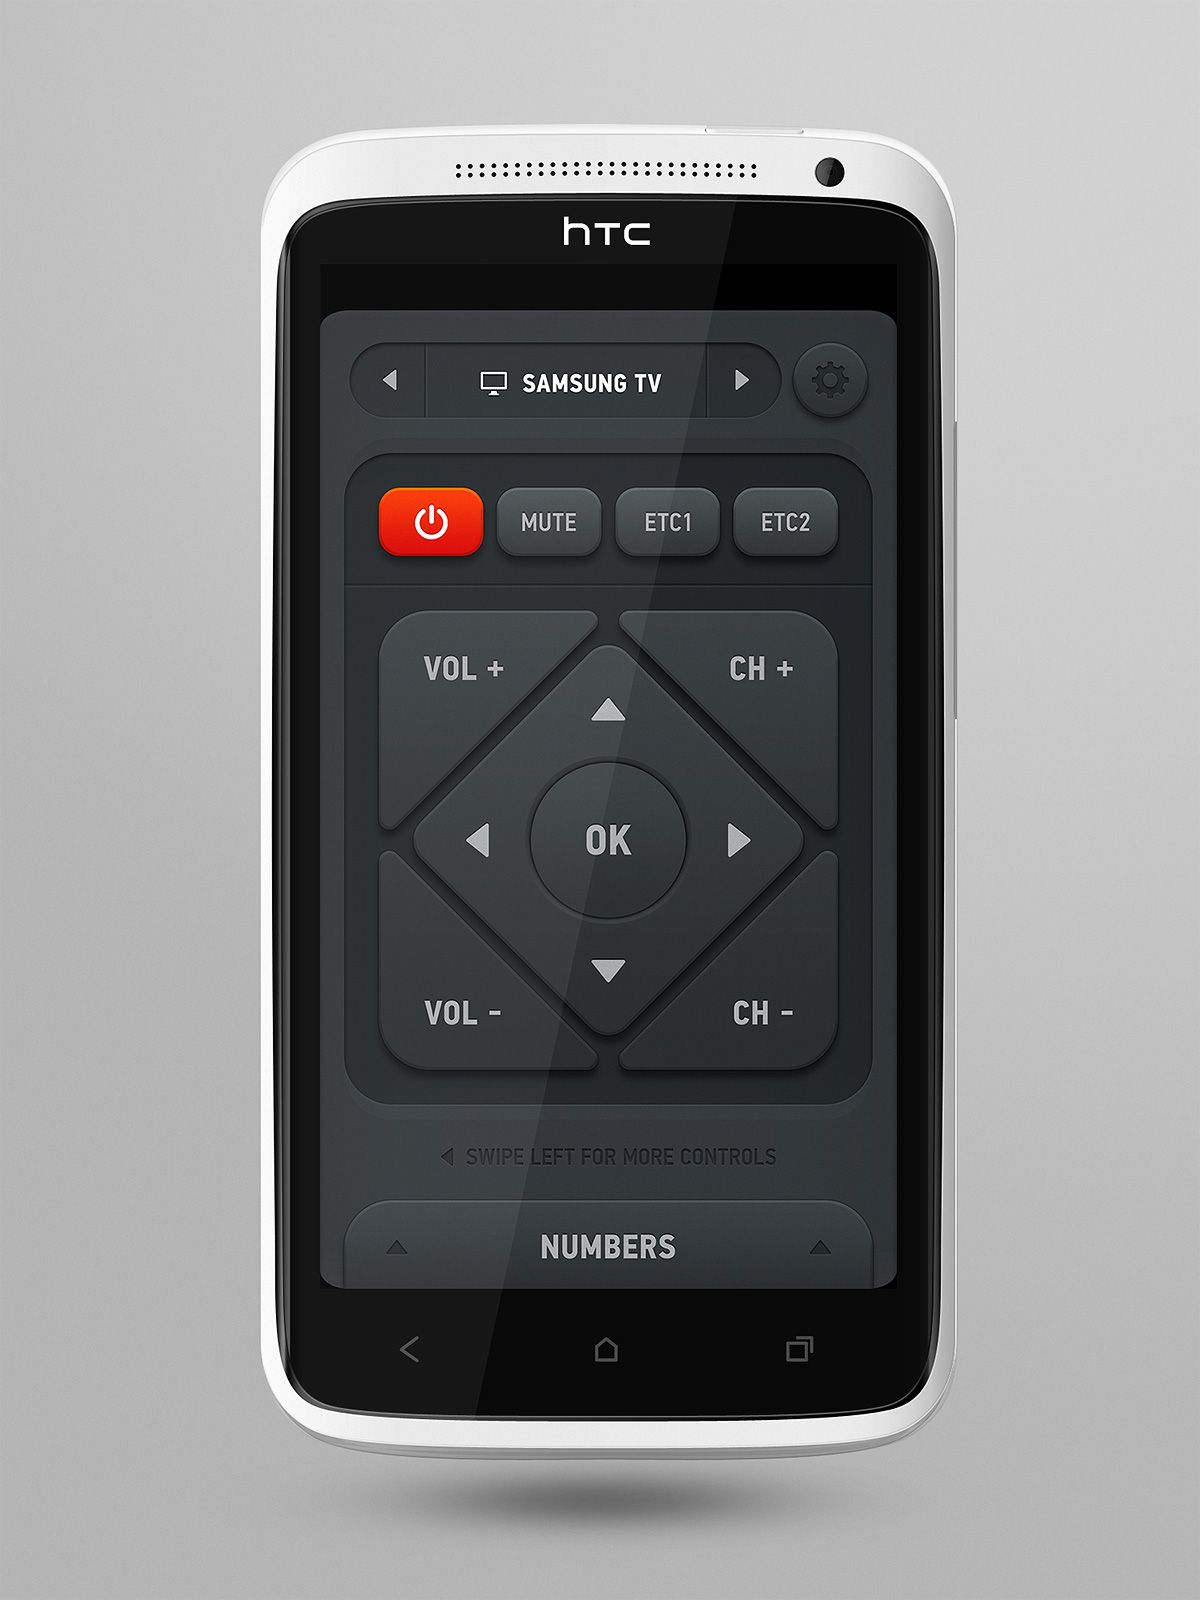 A cool remote for your phone to control things like your